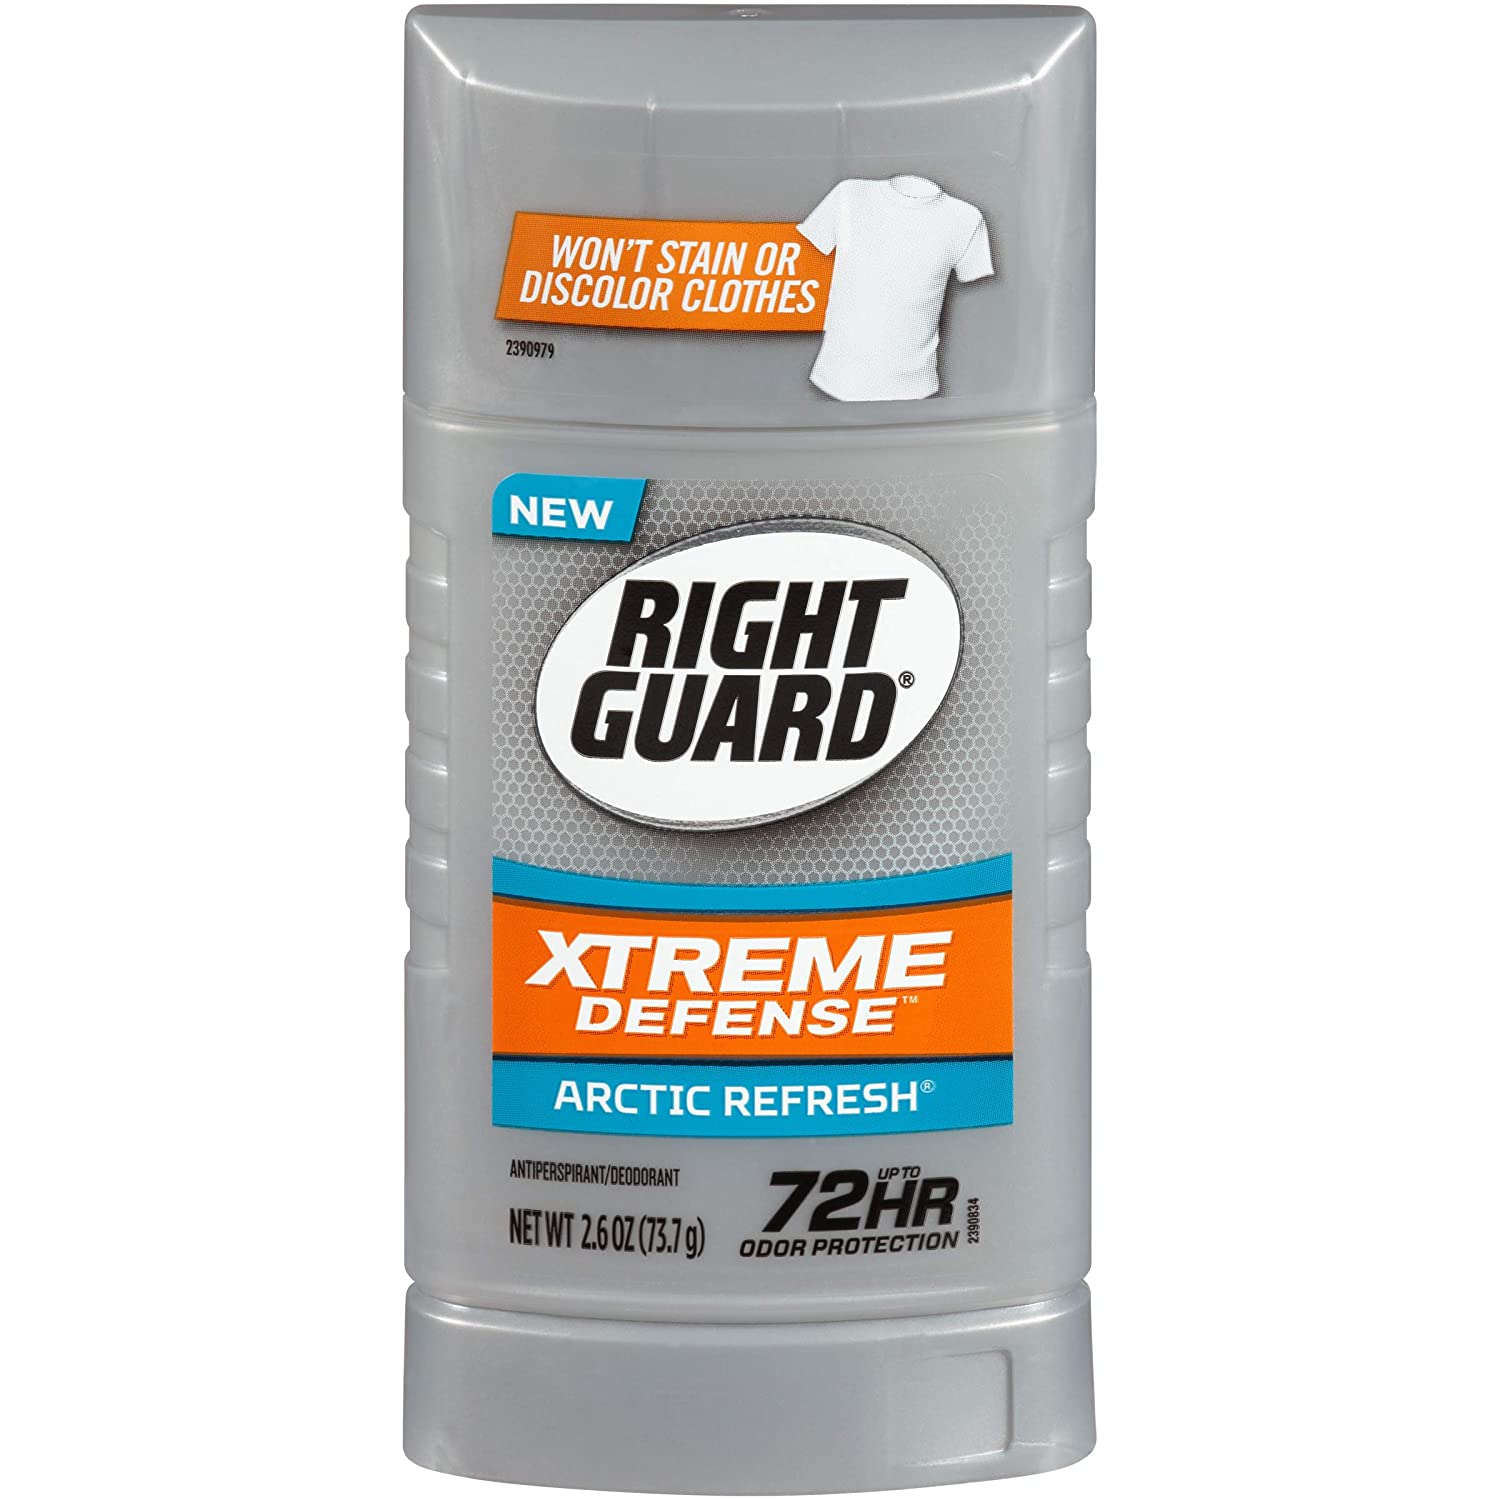 Right Guard Total Defense 5 Antiperspirant Deodorant, Arctic Refresh, 2.6 Ounce (Pack of 6)